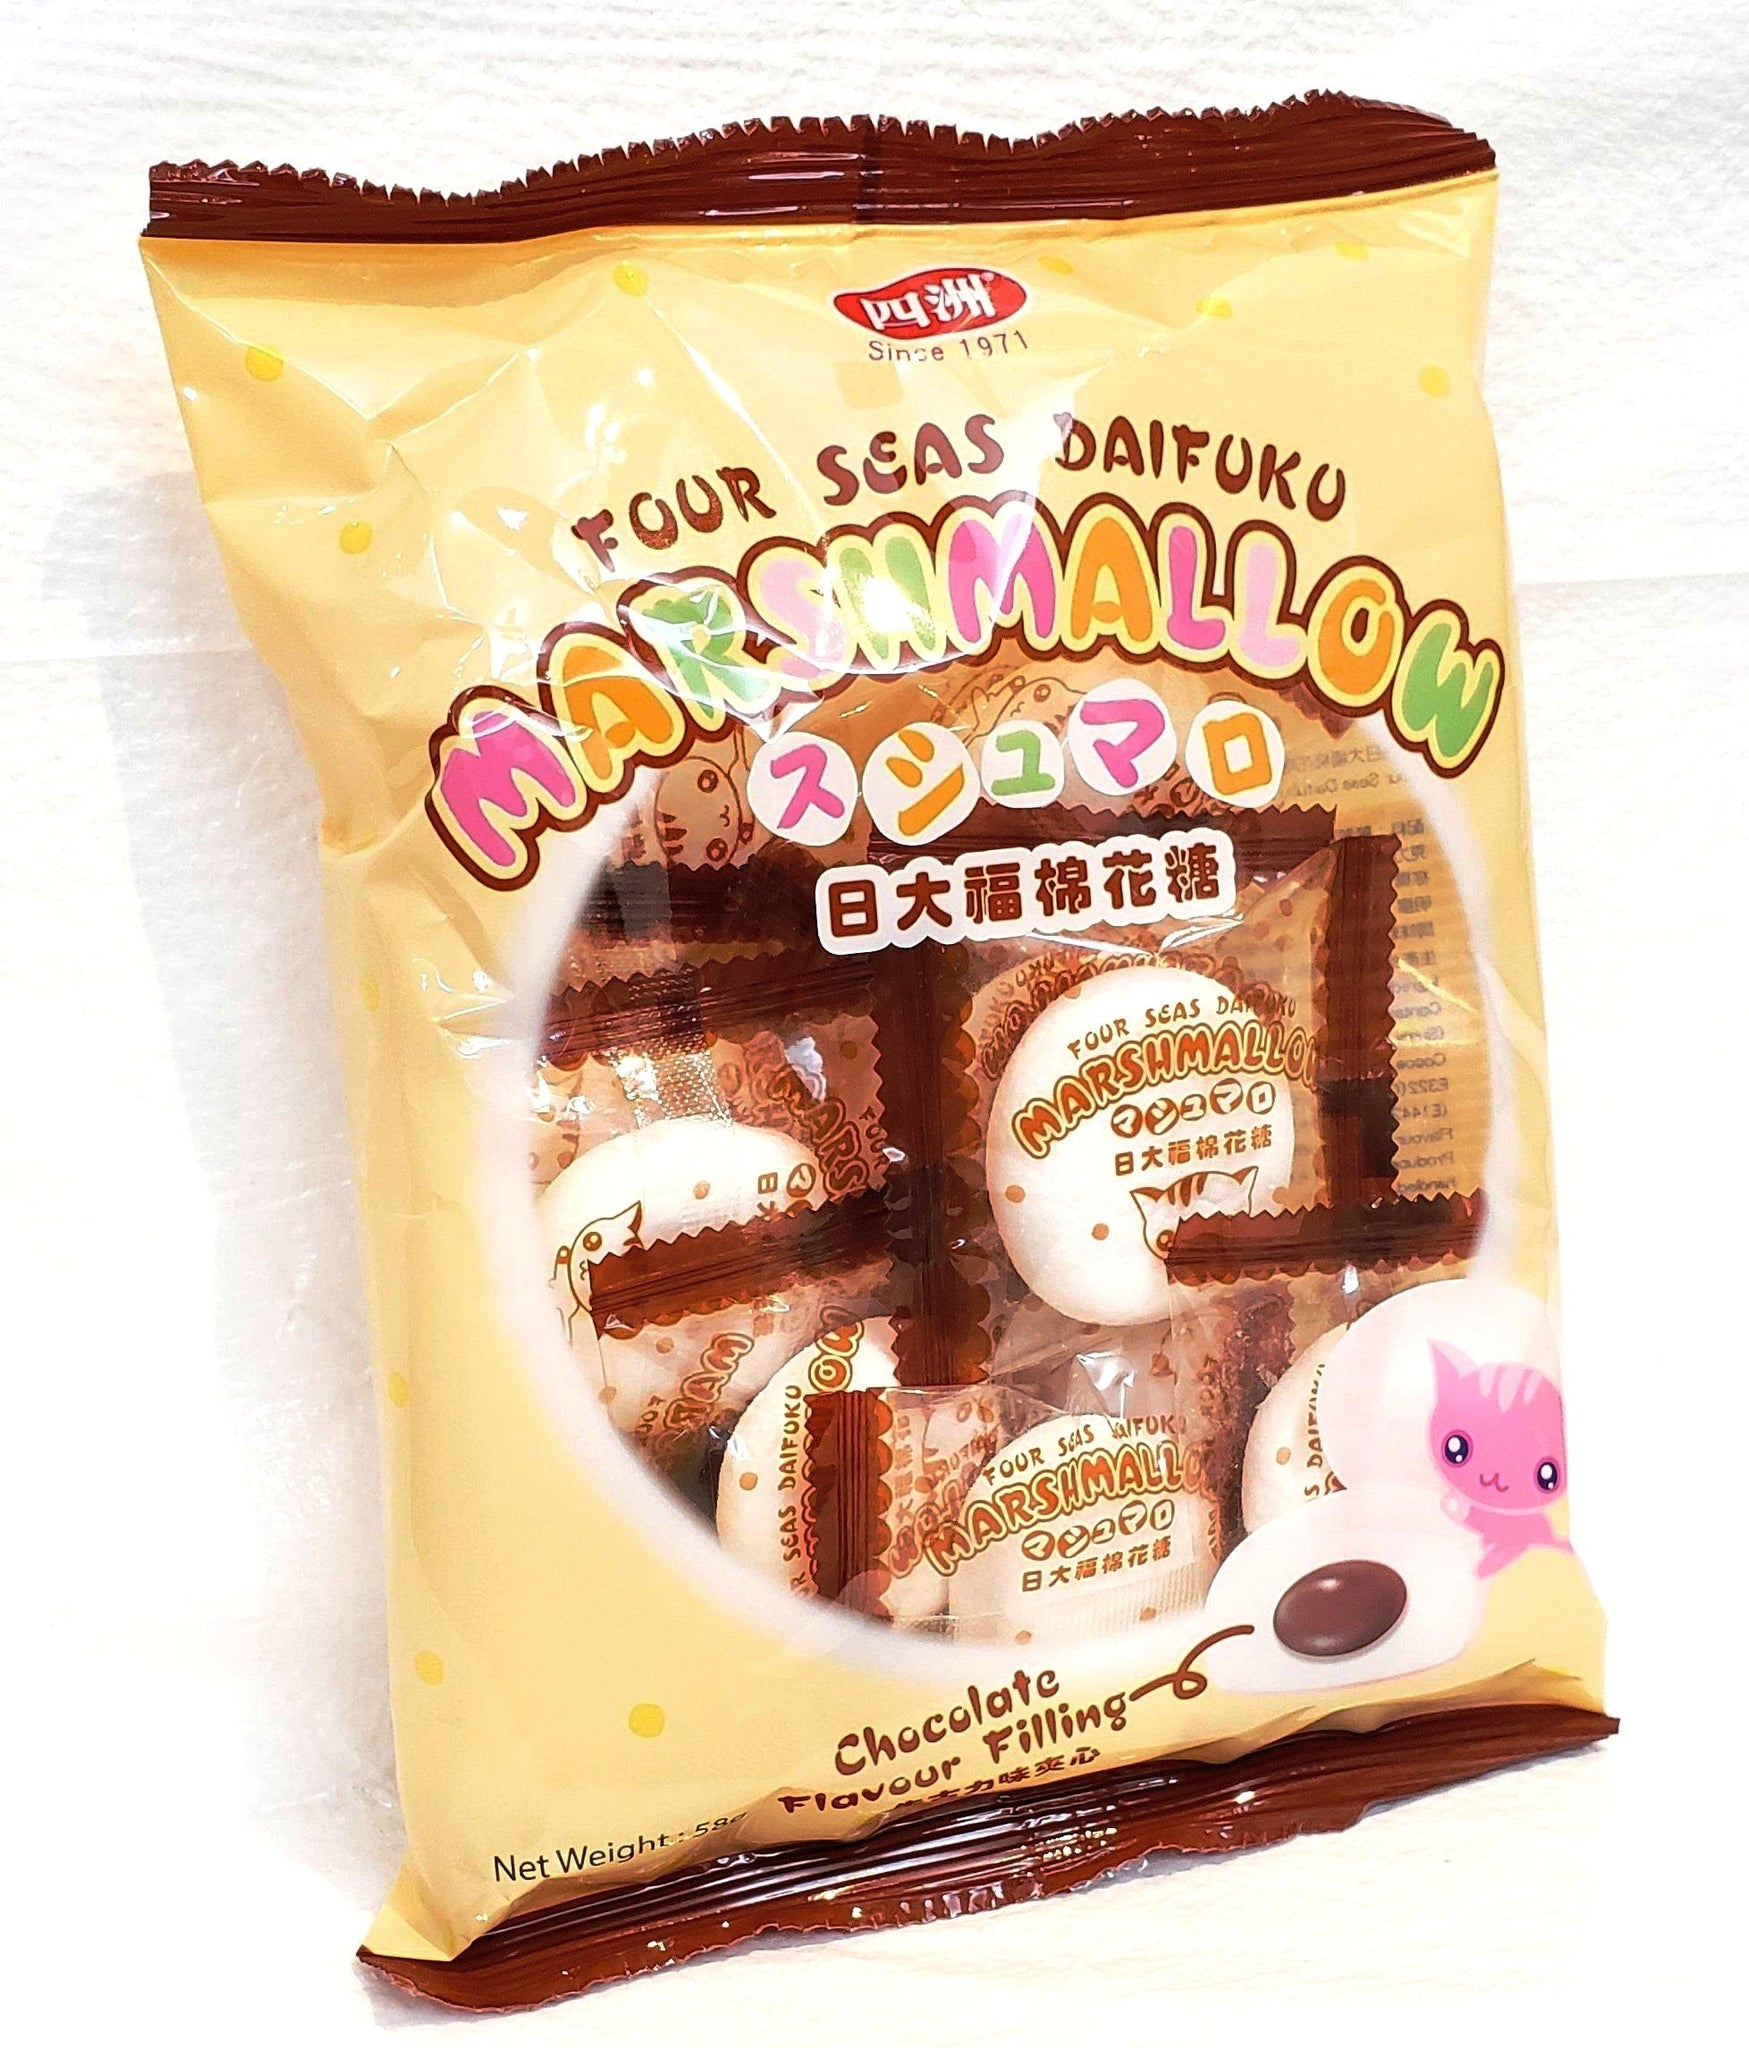 Four Seas daifuku chocolate marshmallow 四洲日大福朱古力棉花糖